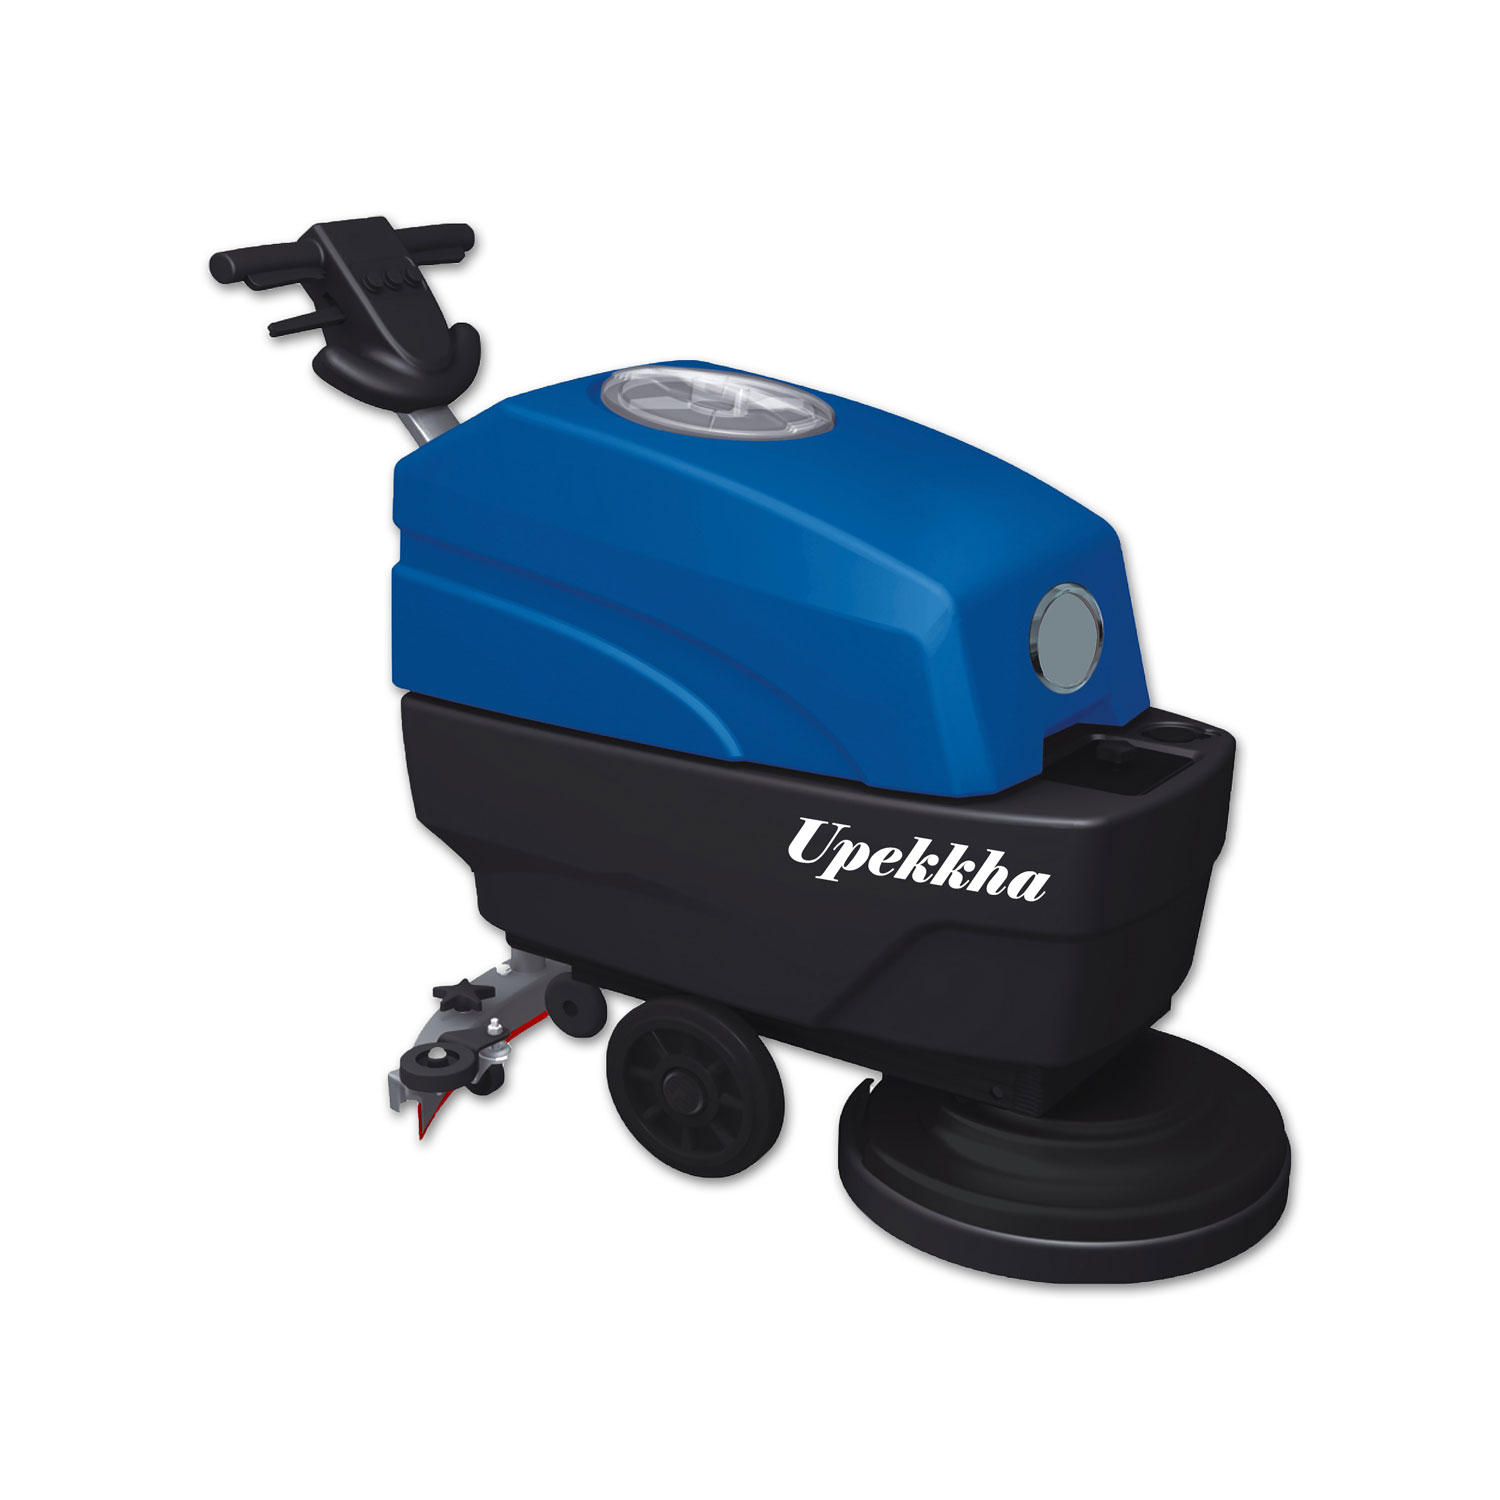 Upekkha™ UpScrub E3343   Mains operated floor automatic scrubber dryer. One of the best affordable 2 in 1 units that Upekkha™ Cleaning Equipment has to offer!